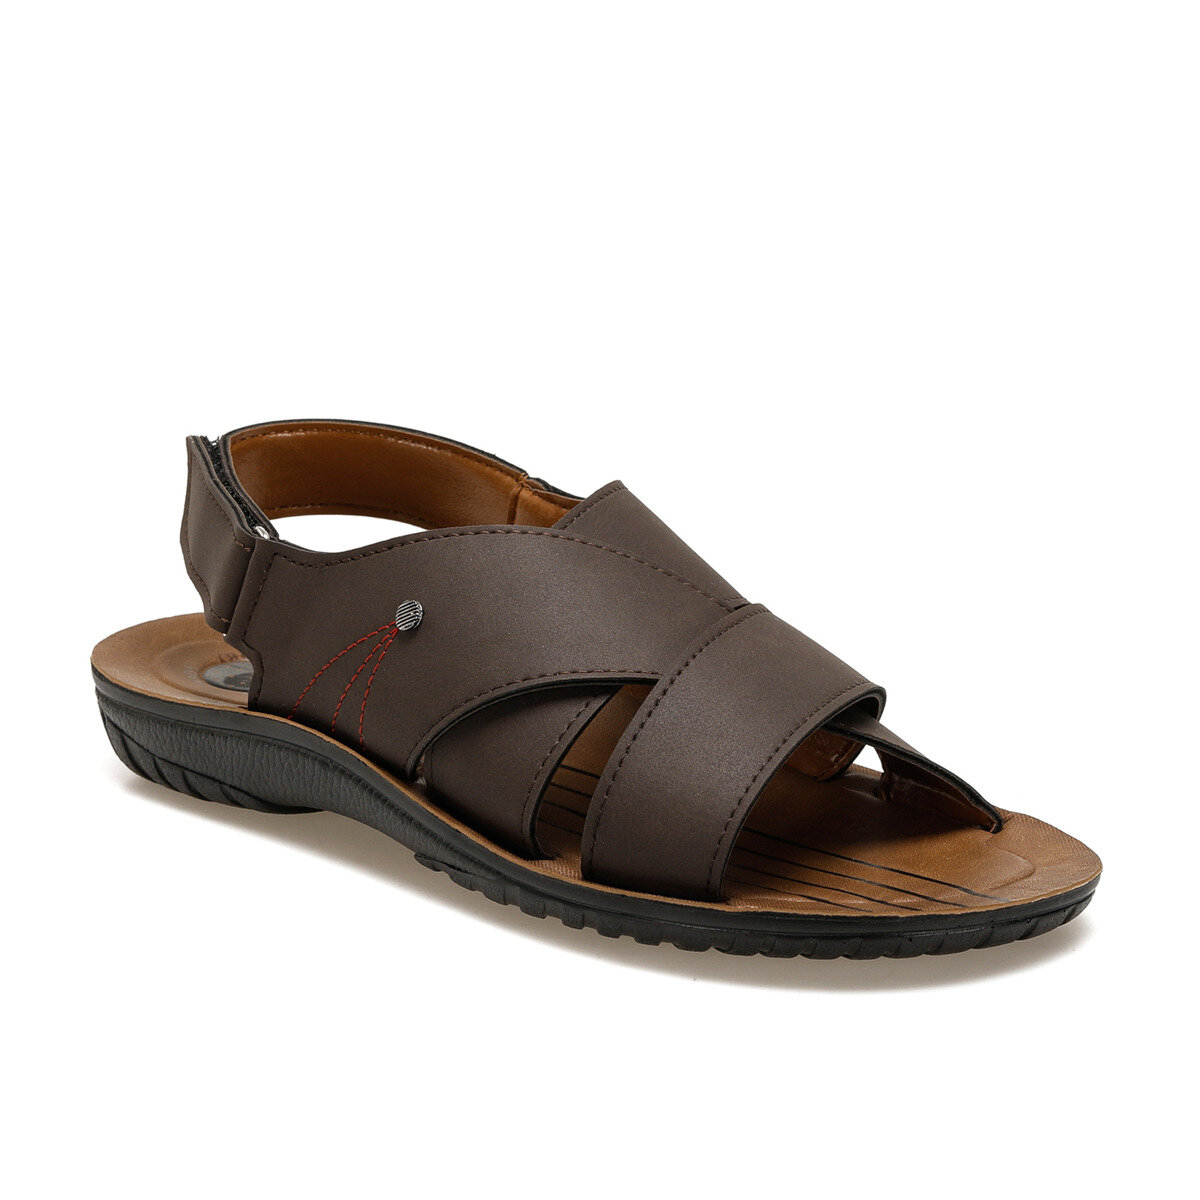 FLO MS-1 C Brown Male Sandals Panama Club